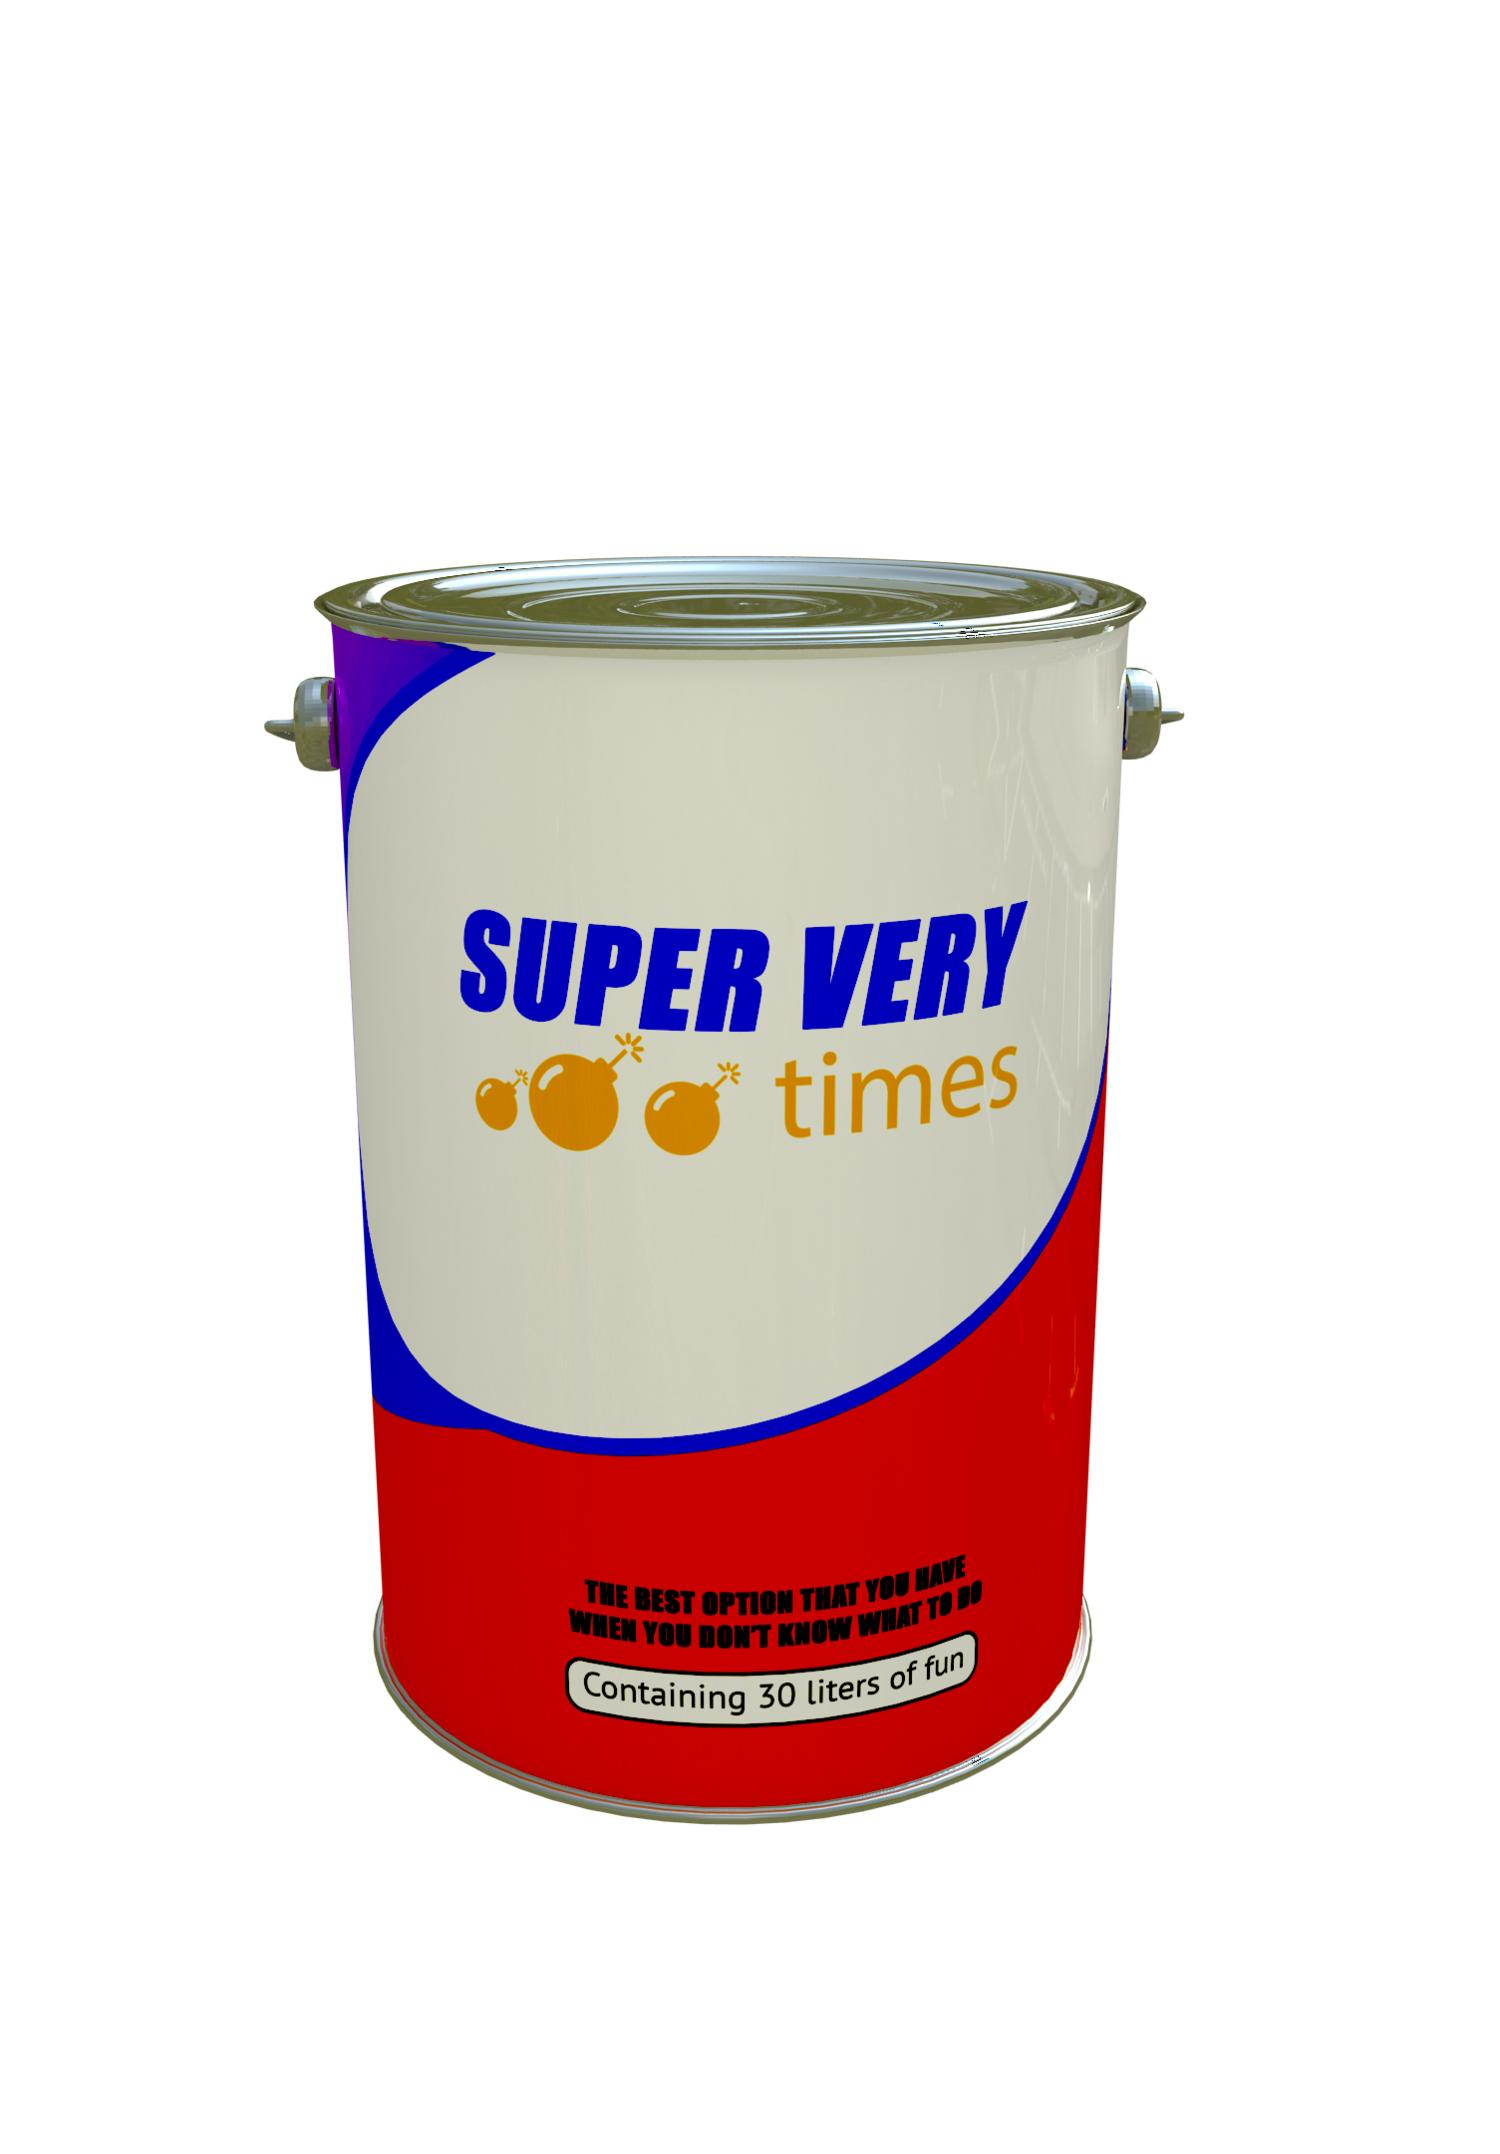 Paint box or cans Render by sodasi_web - 102120